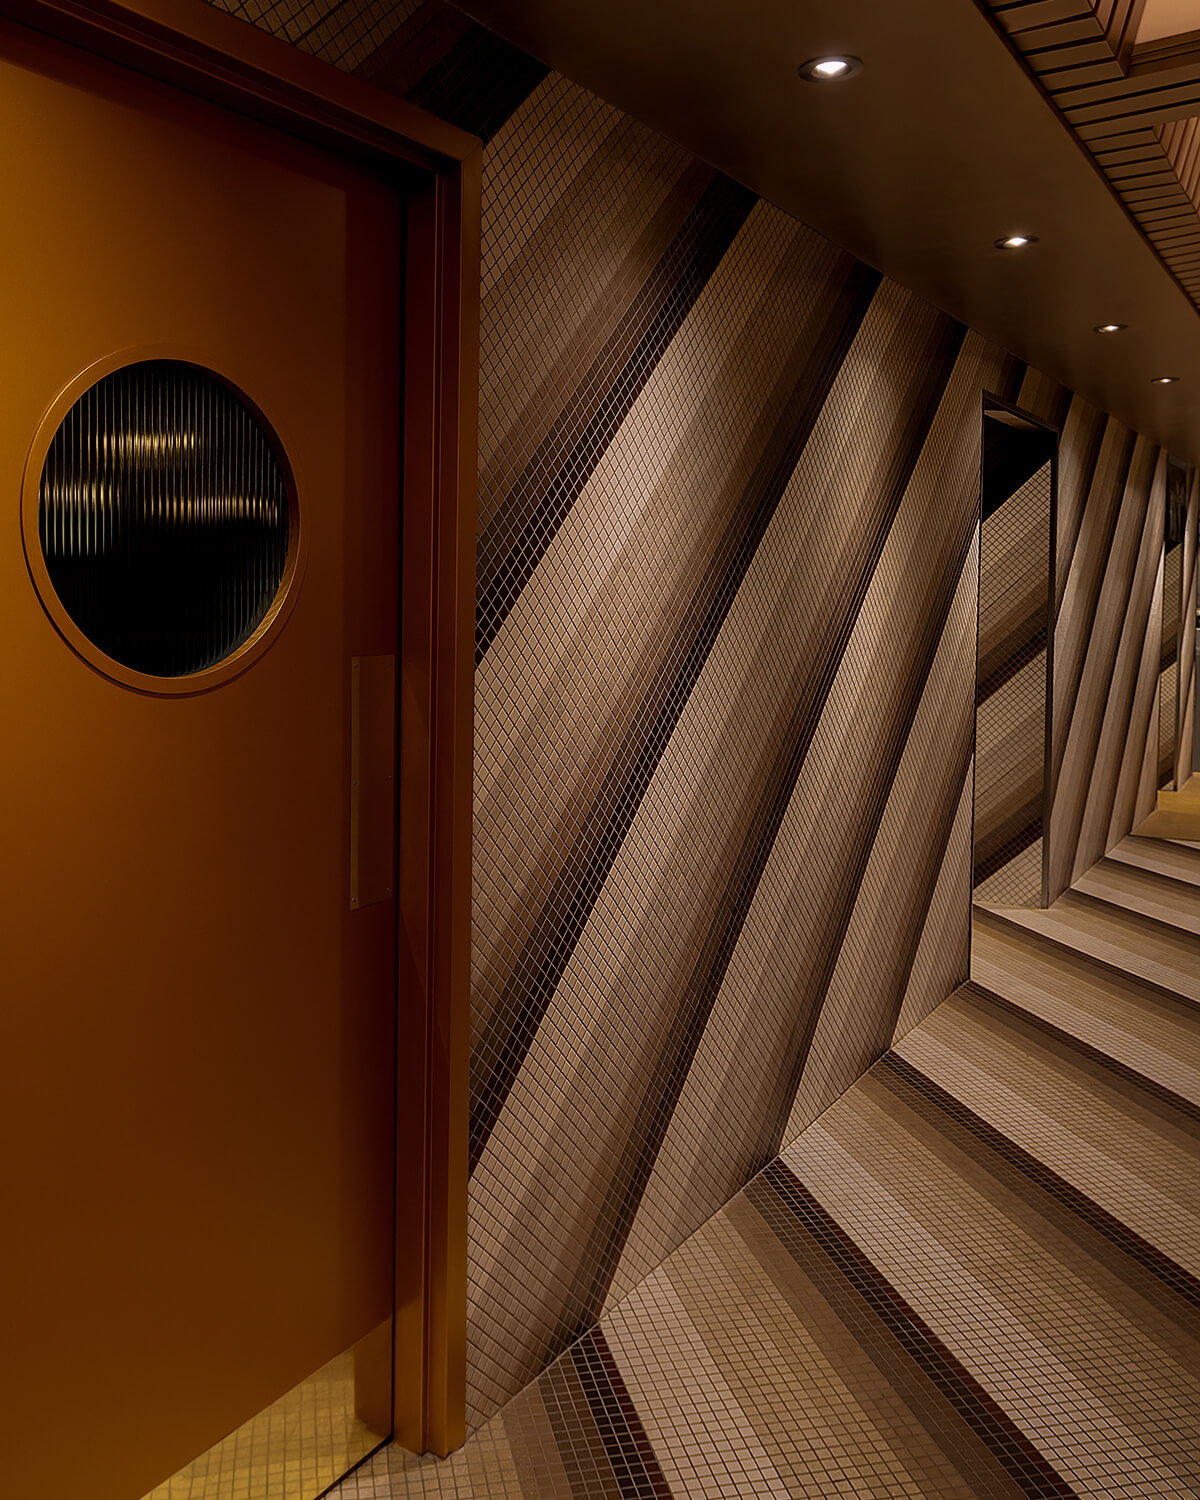 View of hallway showing door to office and diagonal tile pattern on floor and walls